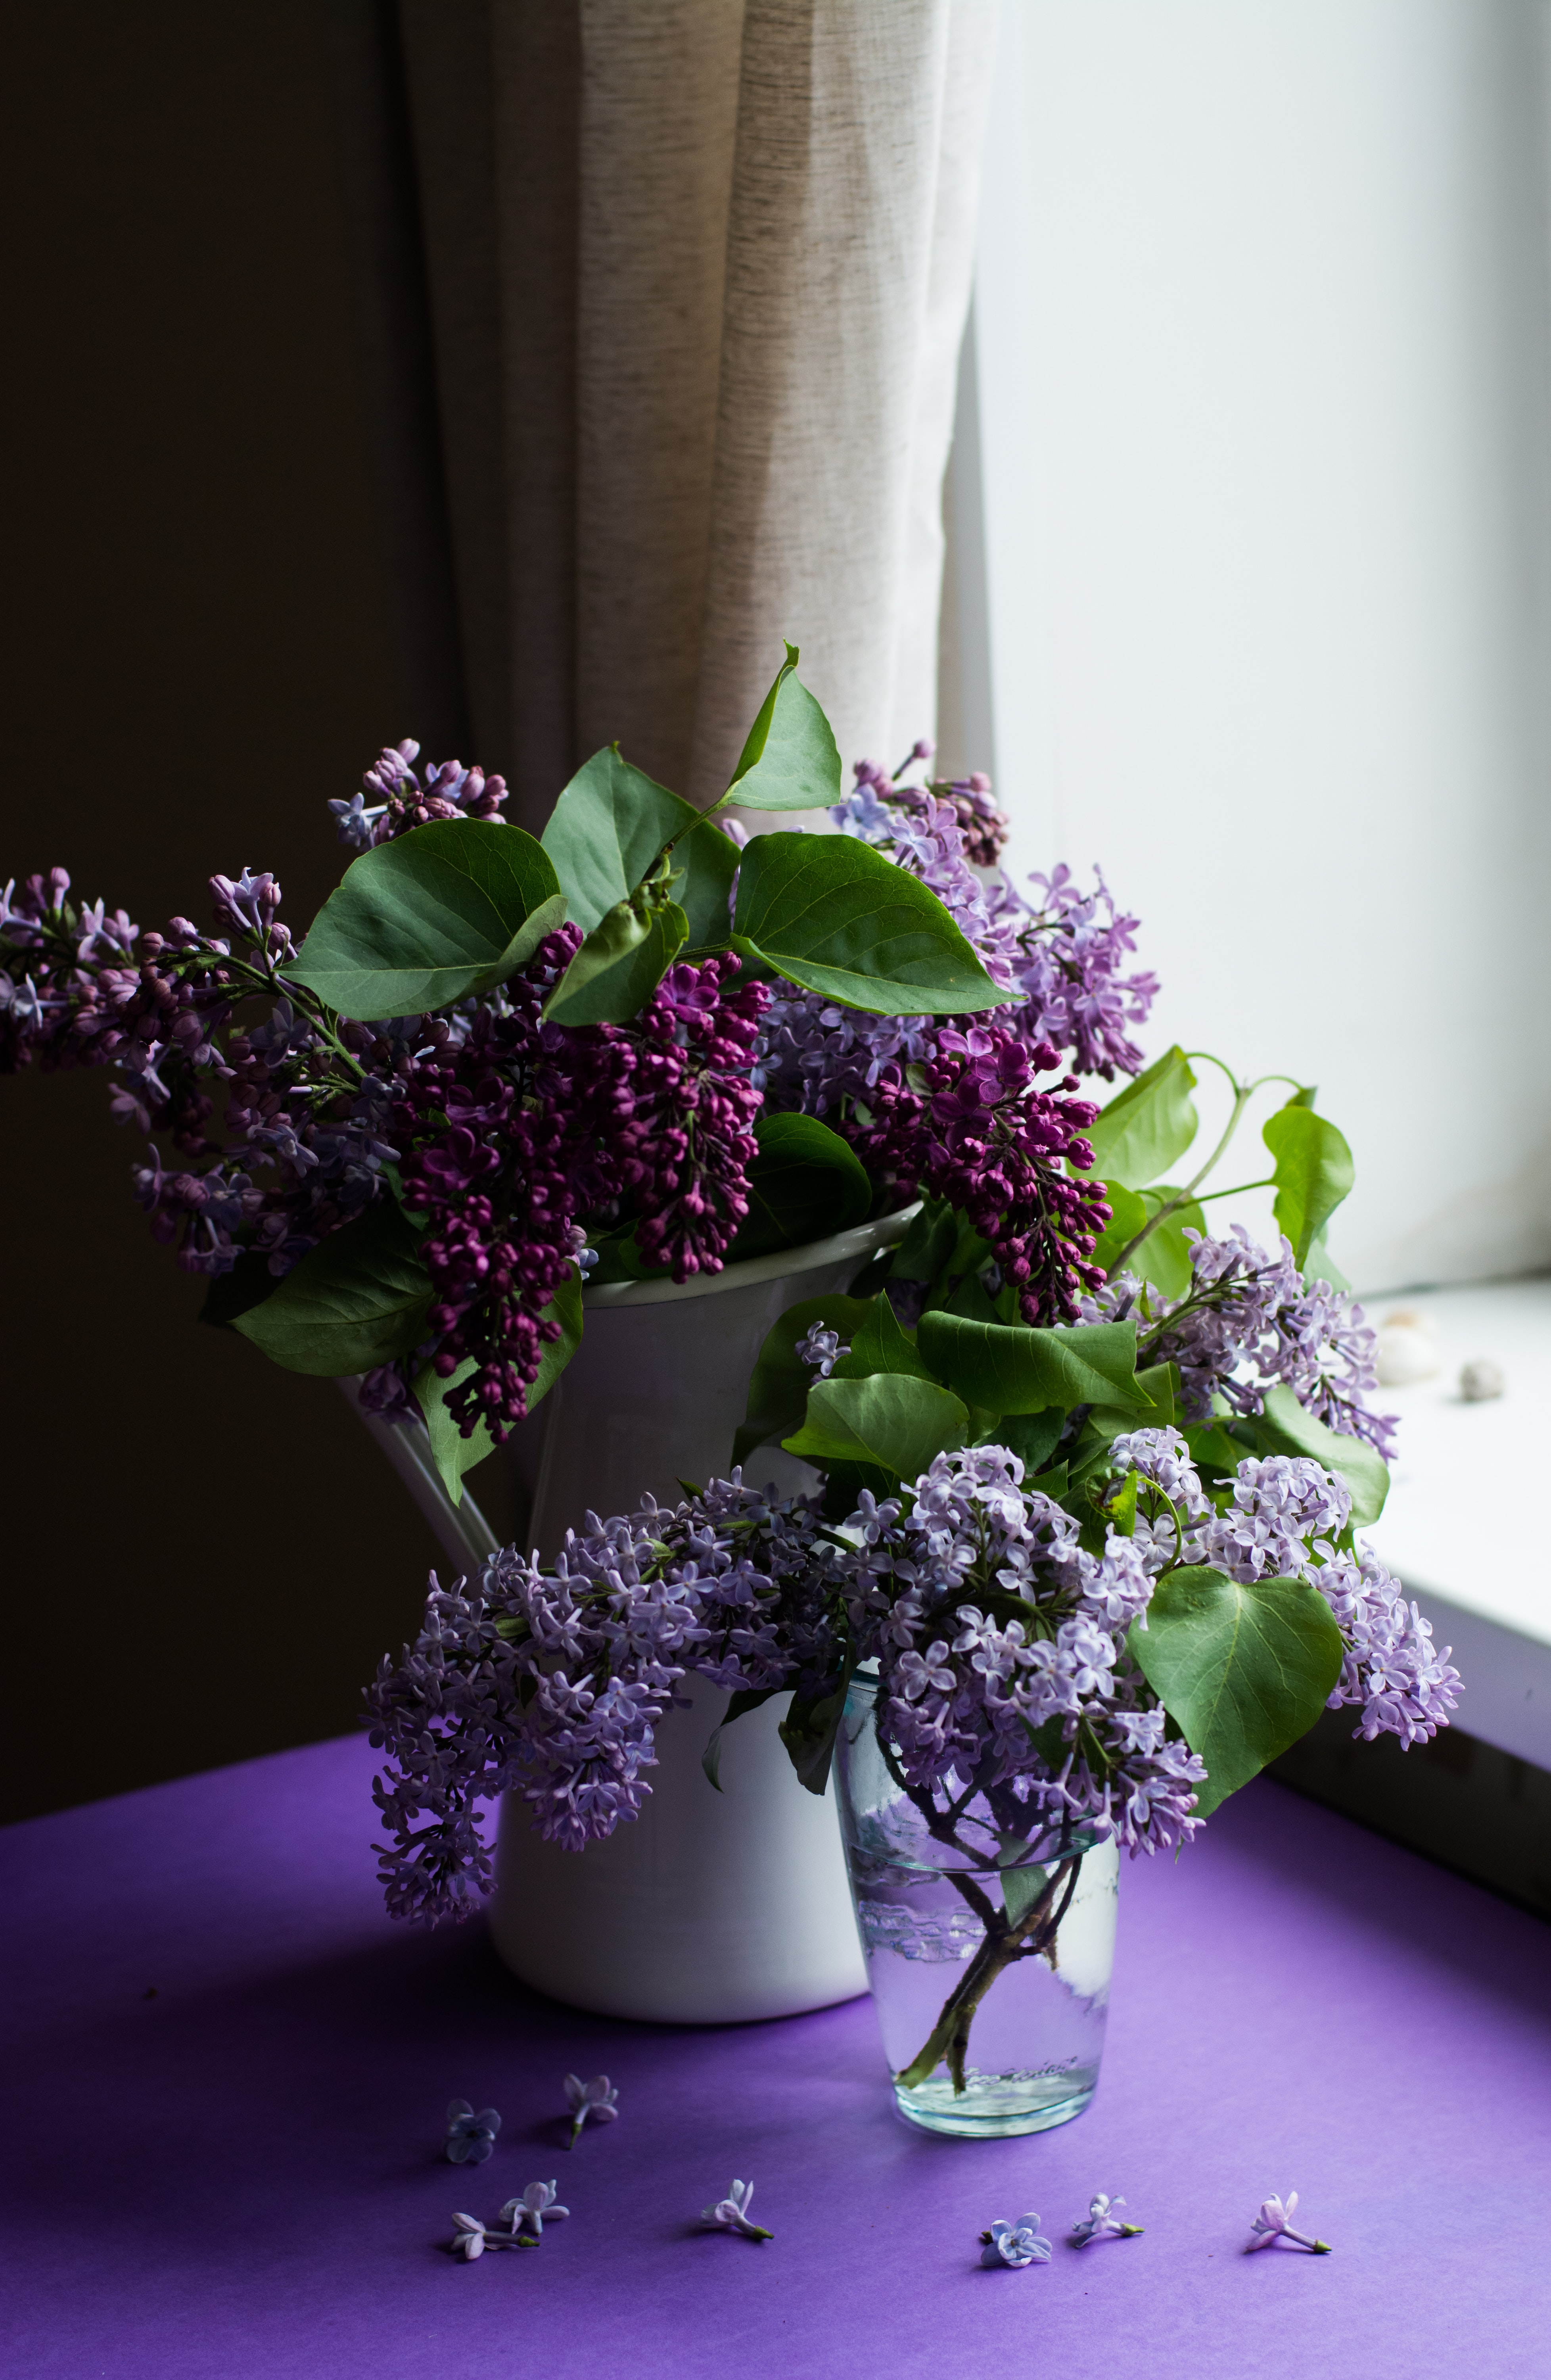 Two vases full of lilac flowers on a table near a windowsill